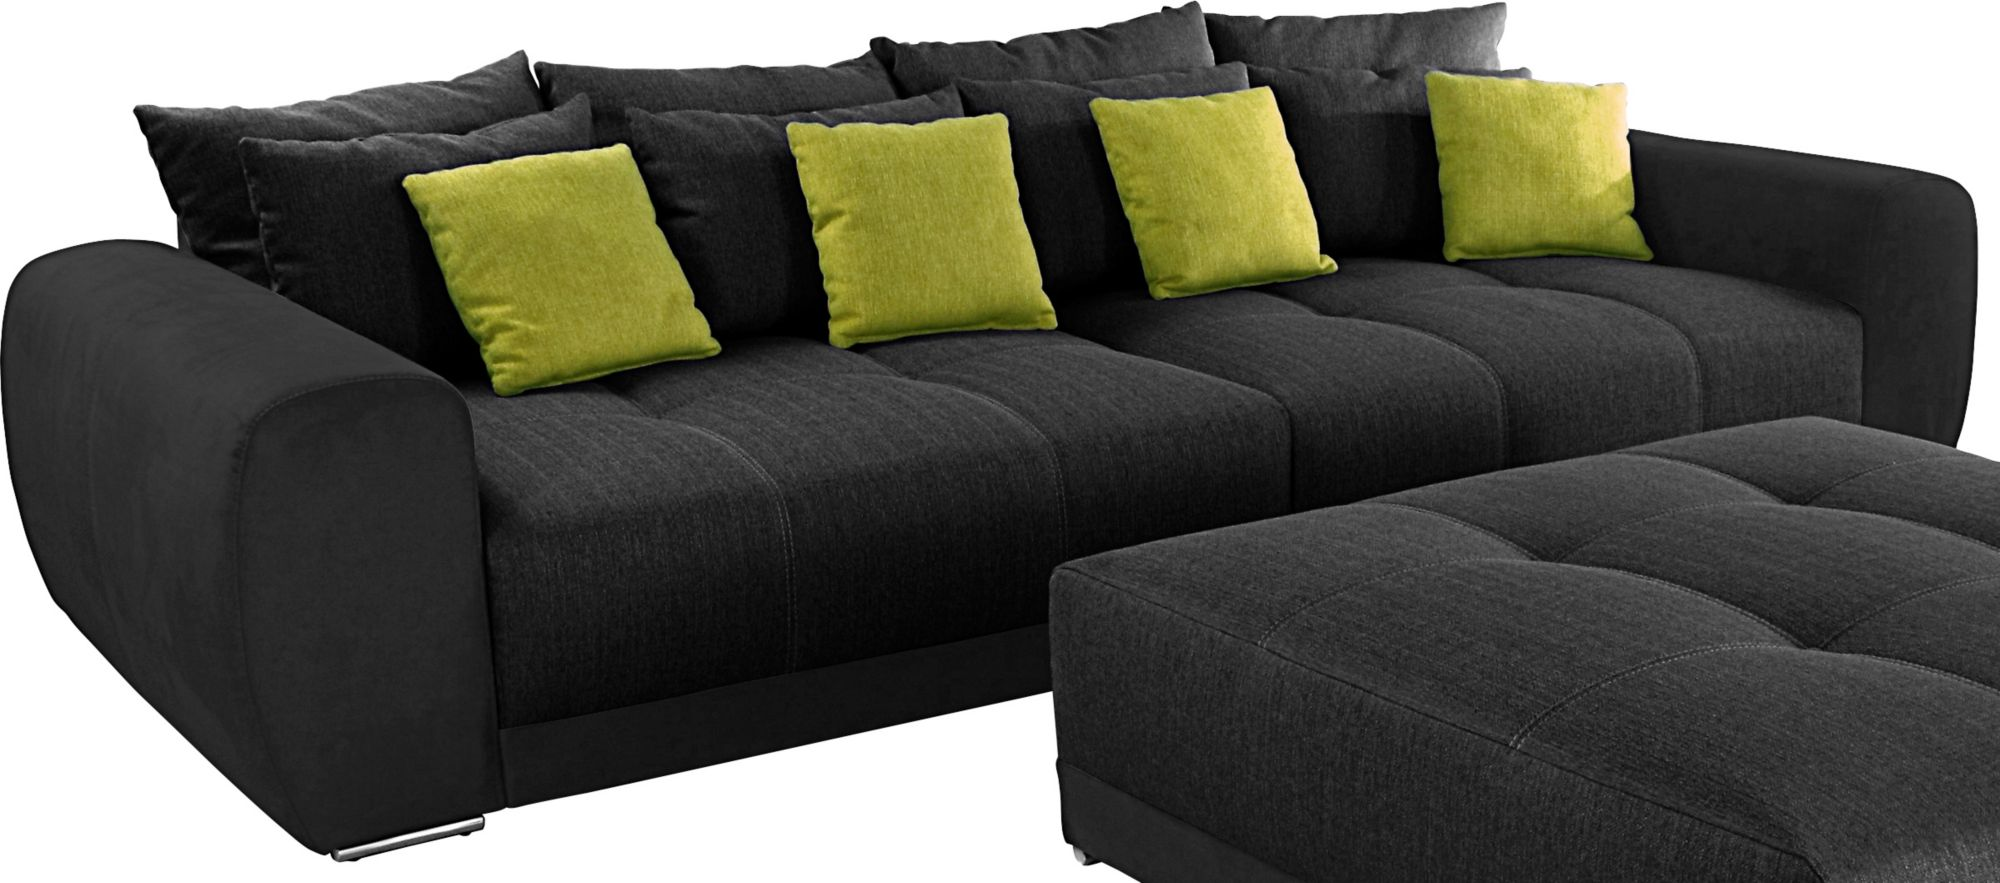 Sofa september 2015 for Sofa entsorgen